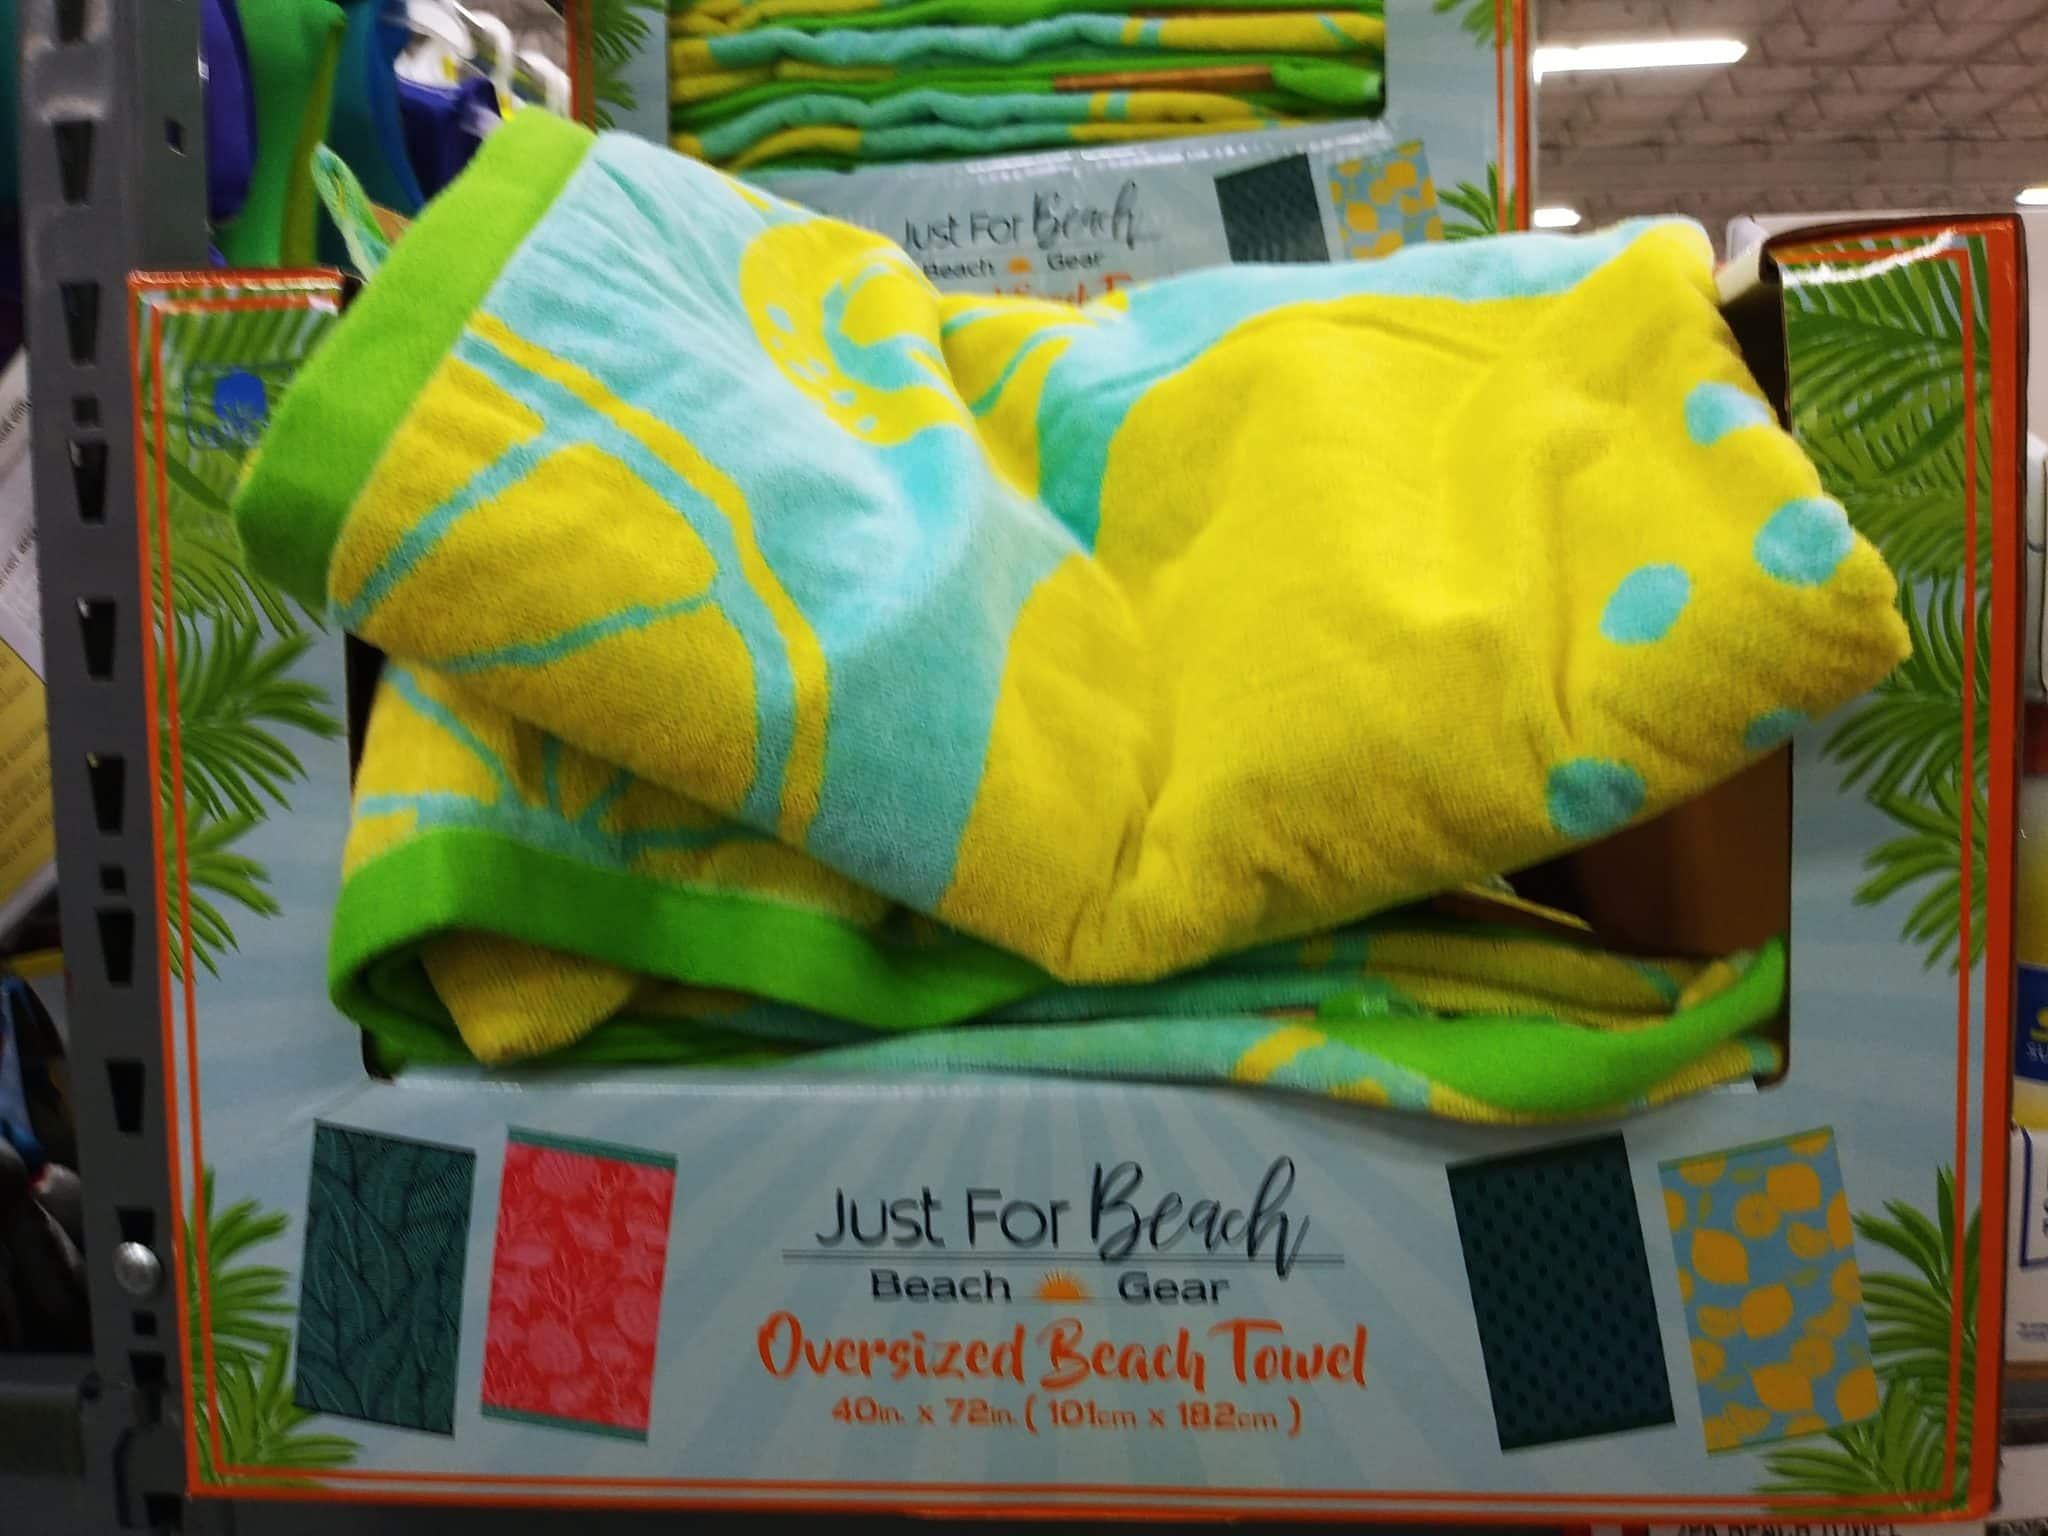 Assorted Beach Towels Under $10 at BJs